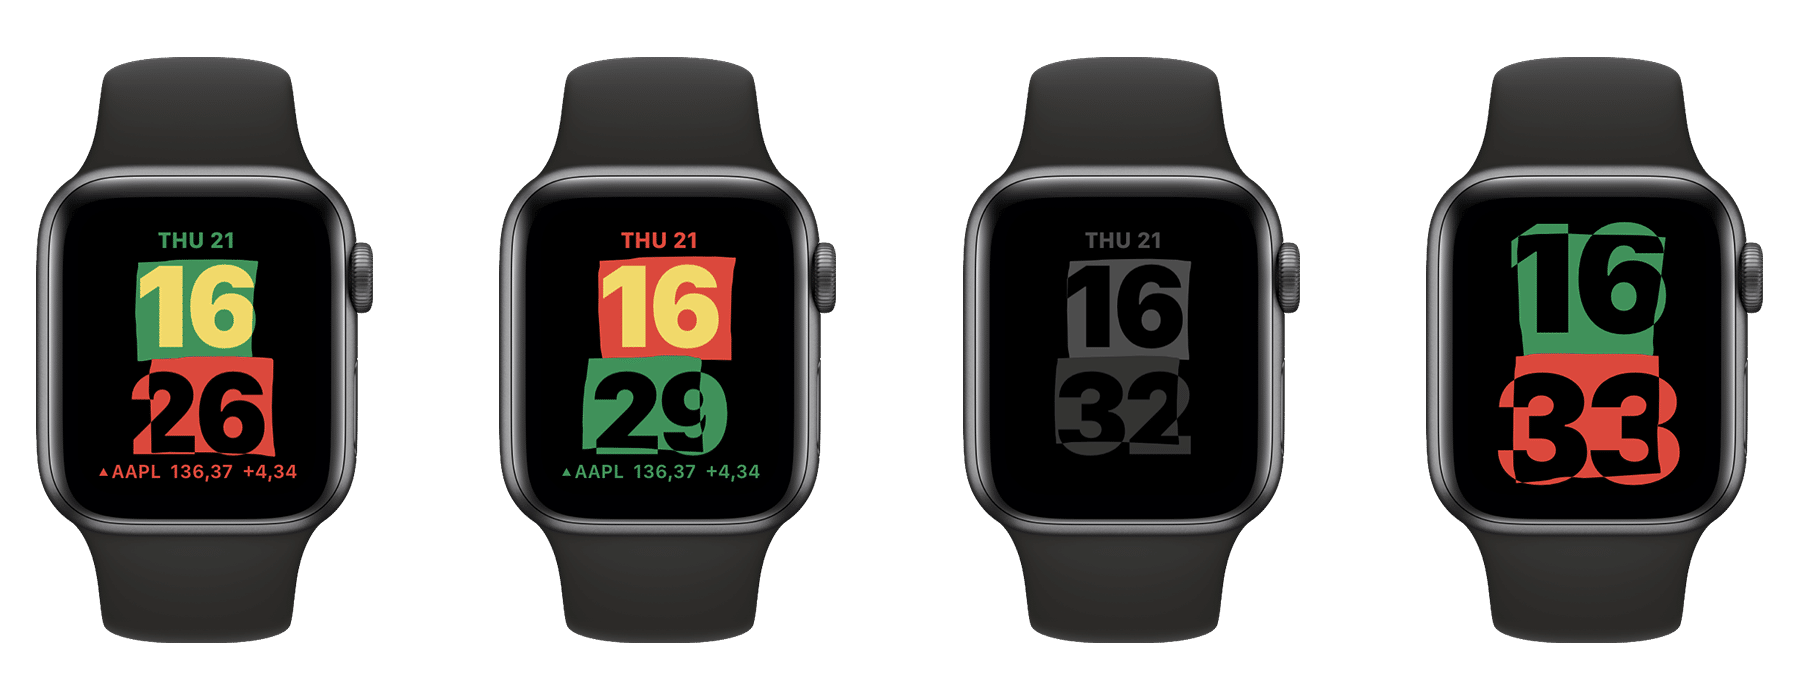 "Apple Watch, nowa tarcza ""Unity"" na watchOS 7.3"